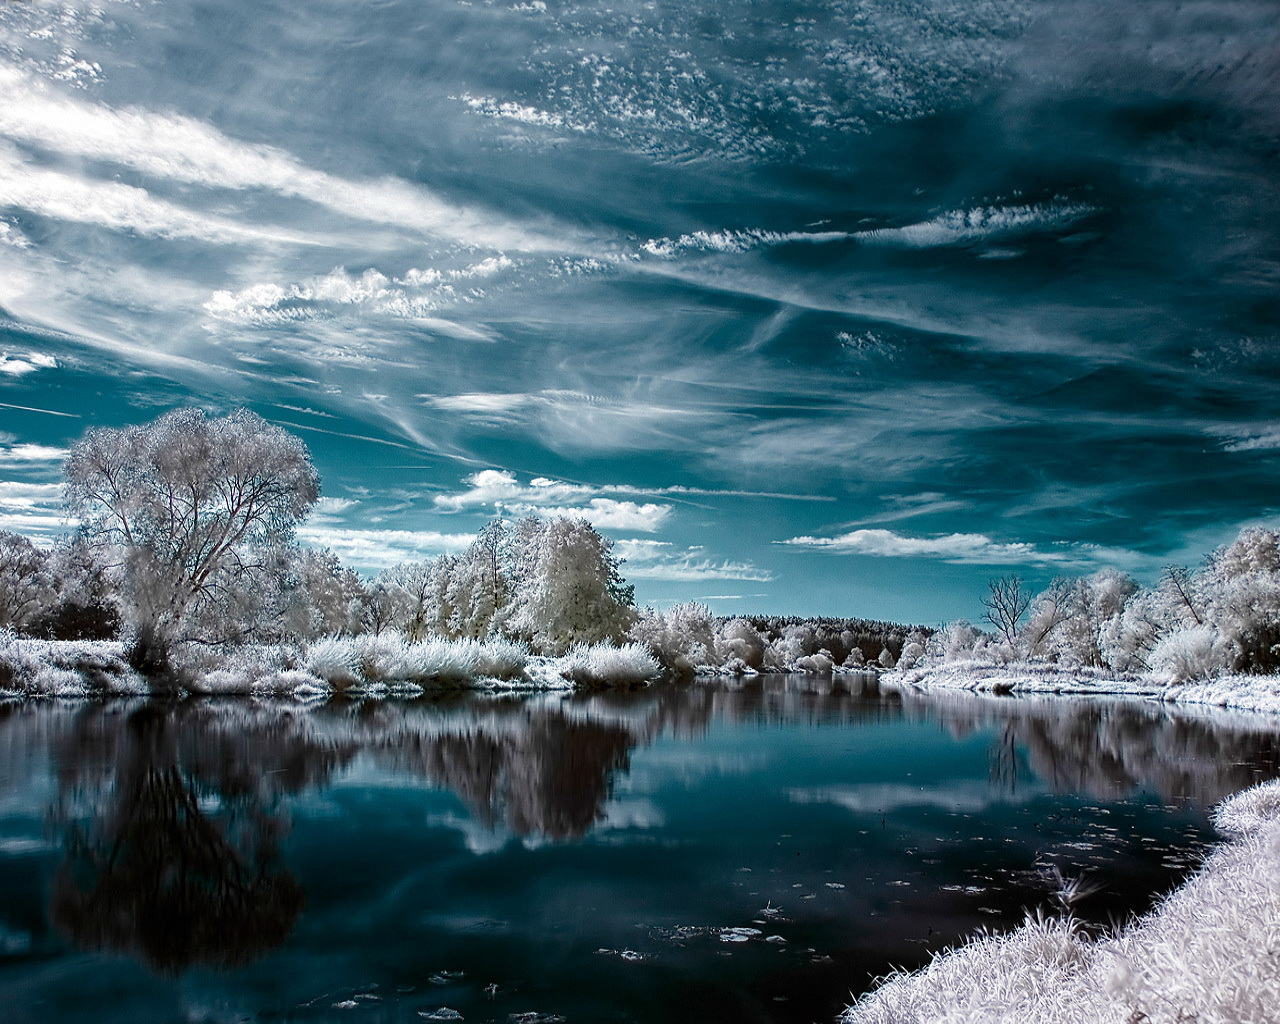 Wallpaper Collections 43 Beautiful Winter Wallpapers 1280x1024